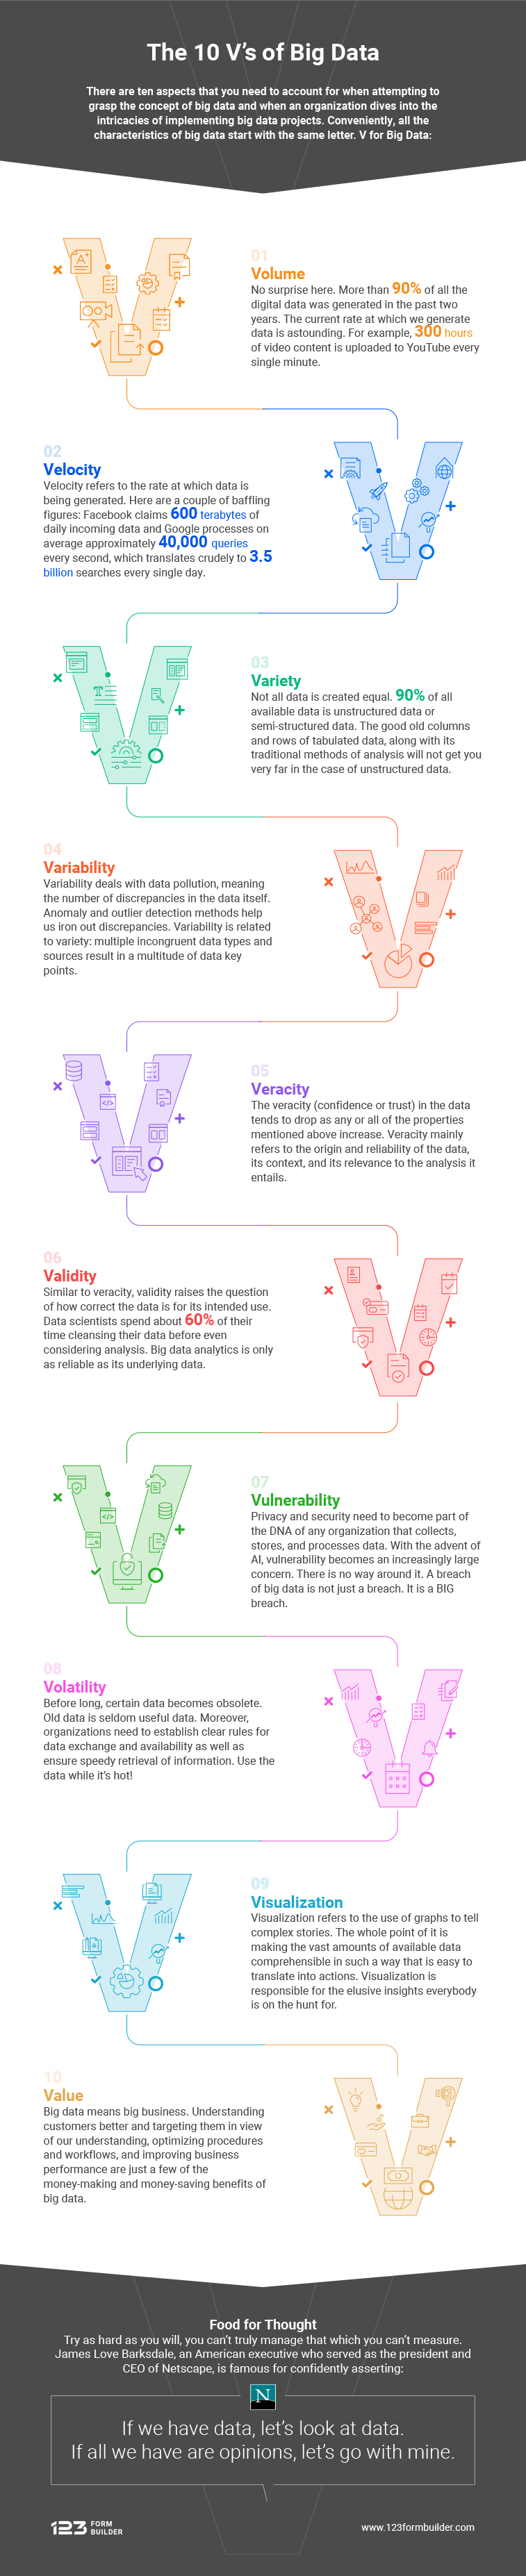 The 10 V's of Big Data